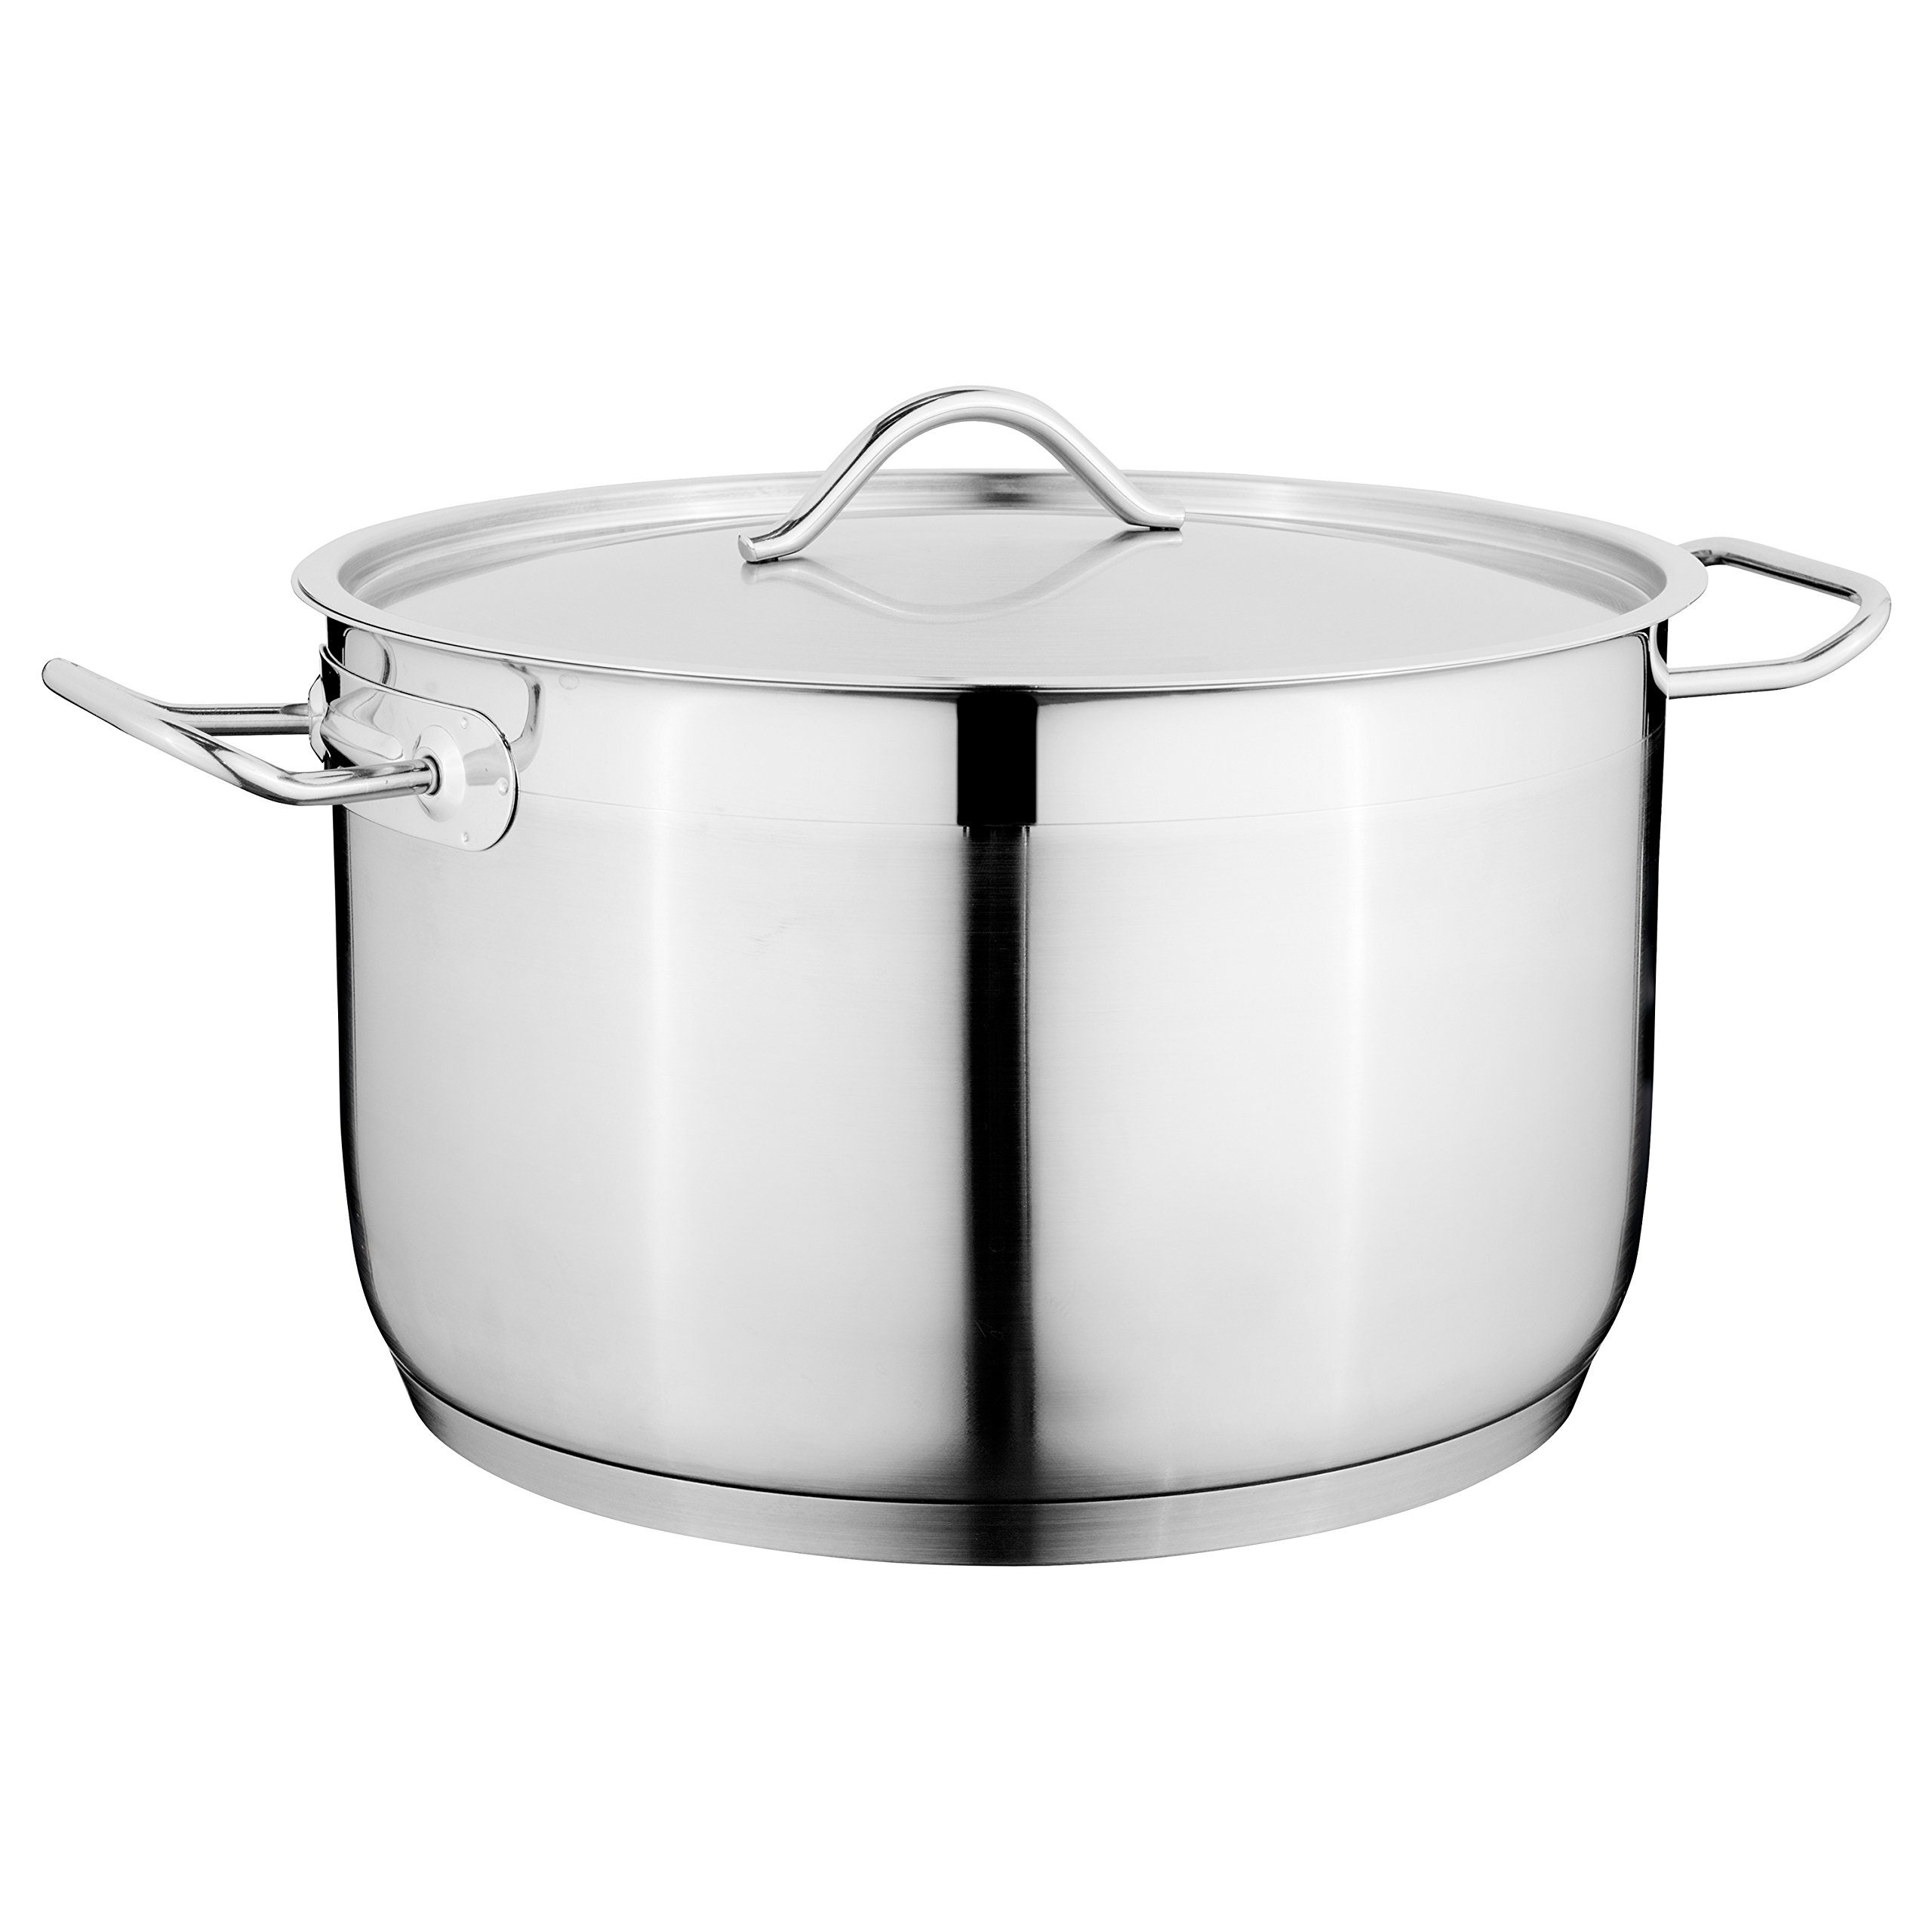 Berghoff Hotel 11'' 18/10 Stainless Steel Covered Casserole, For All Stove-Tops - Dishwasher Safe